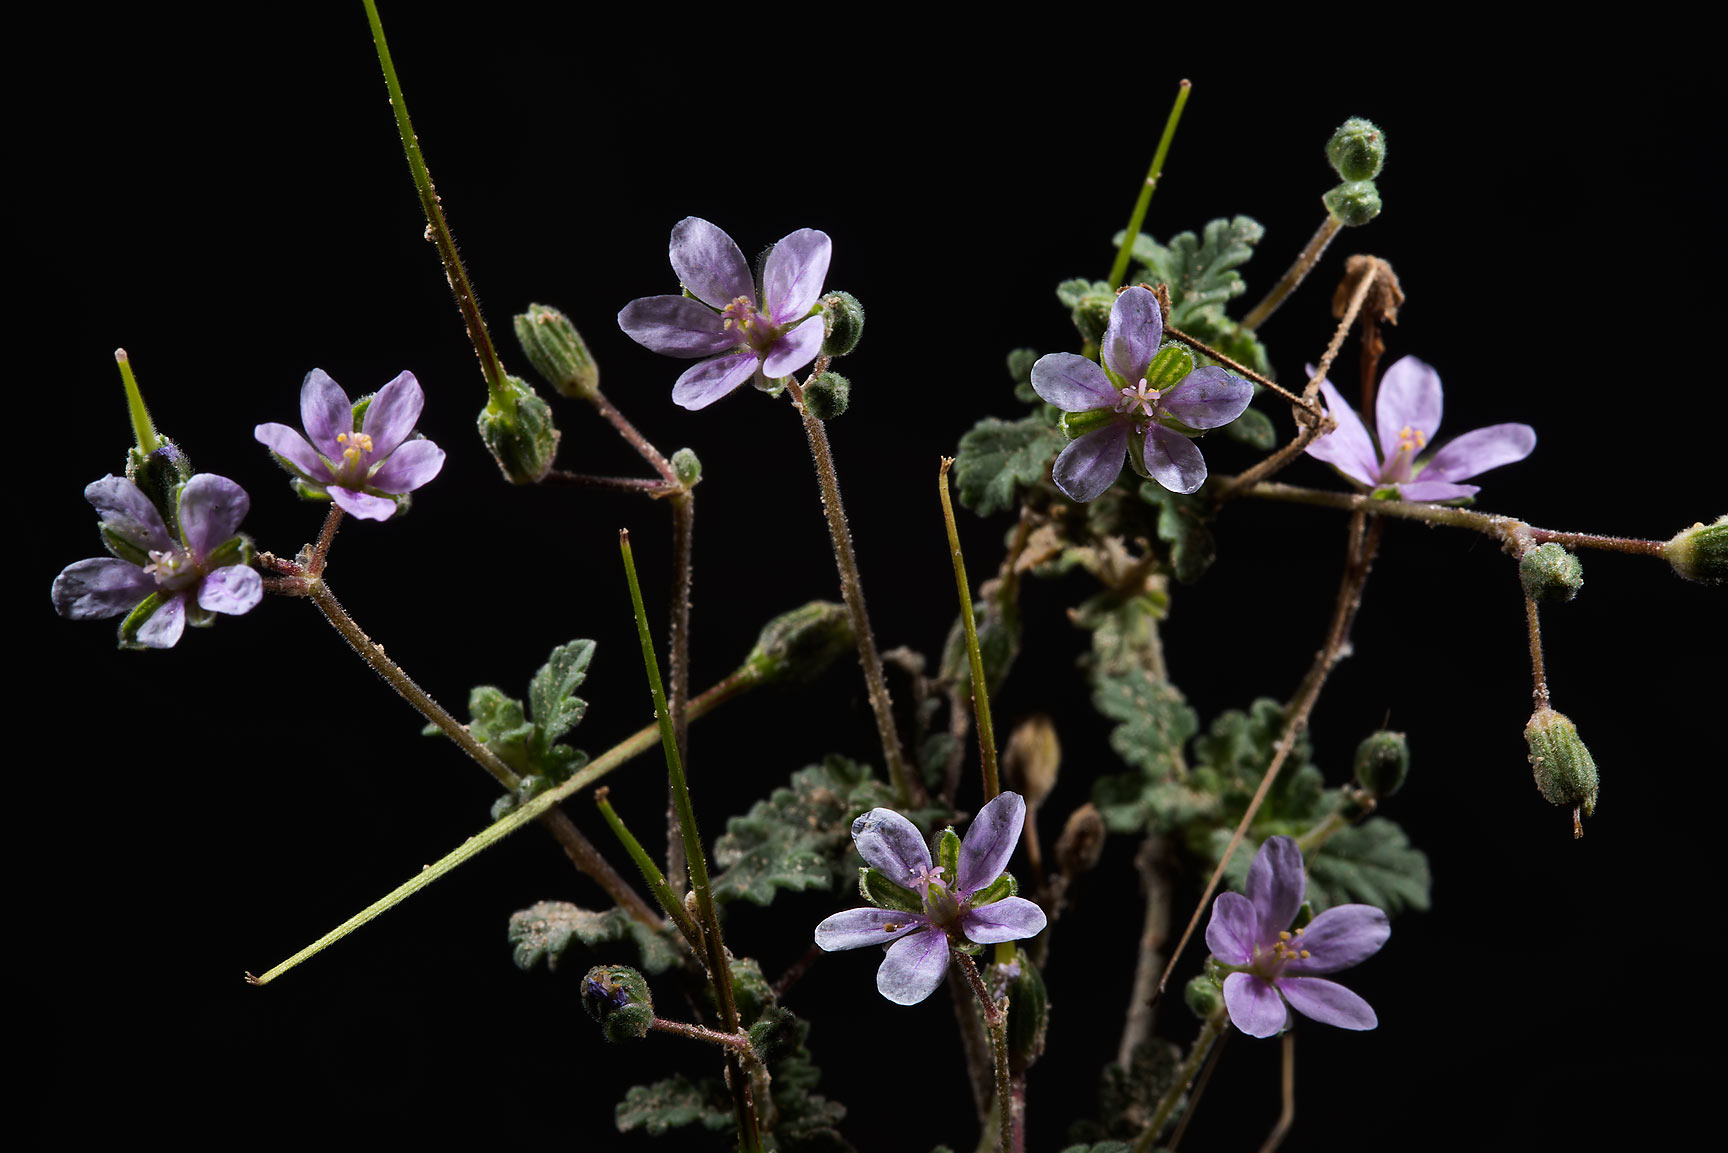 Cutleaf Heron's bill (Erodium laciniatum...from Khawzan to Al-Jumayliyah. Qatar